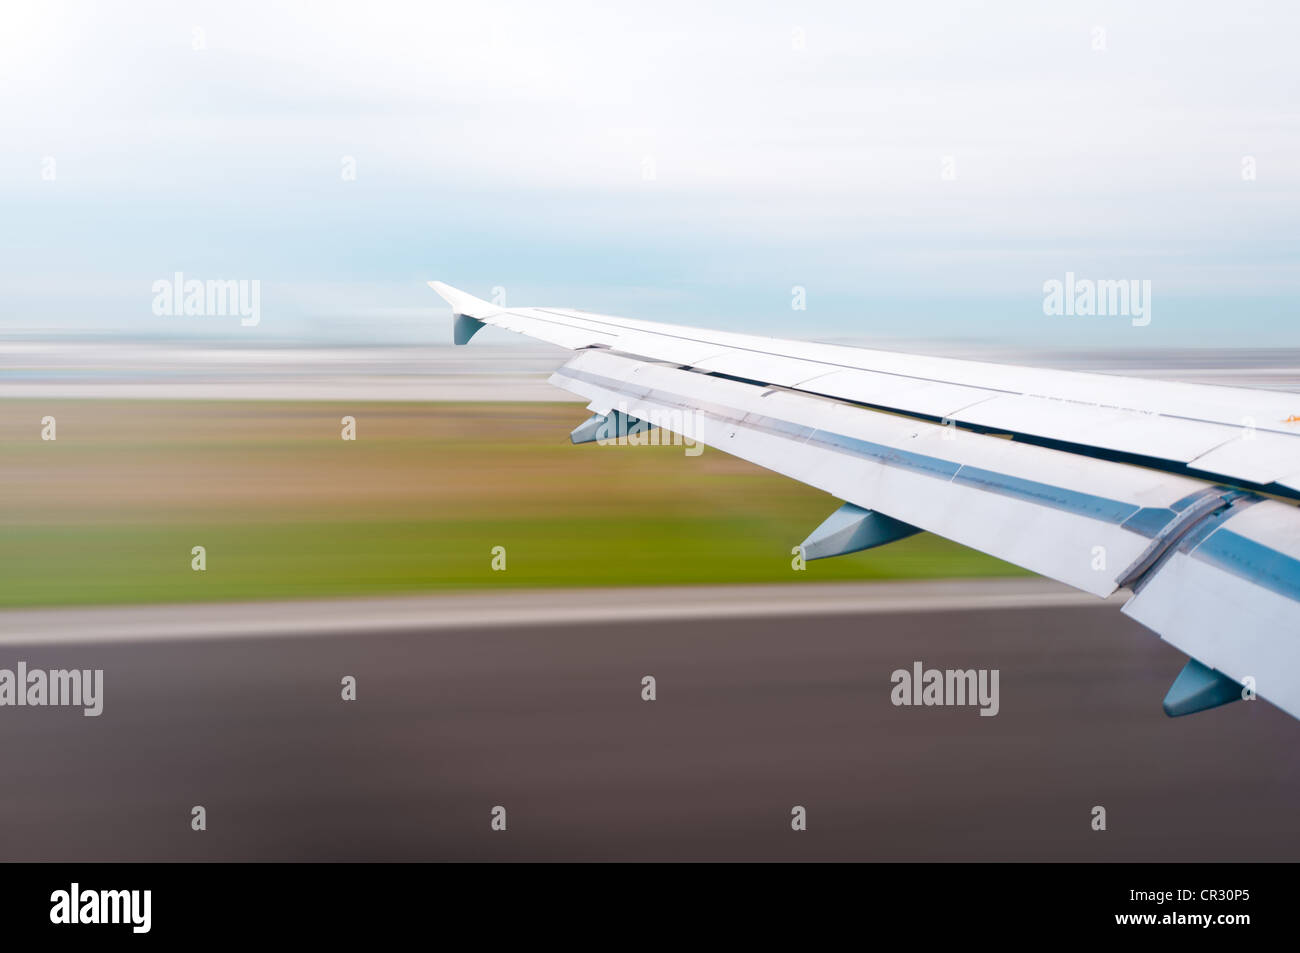 View of air plane wing during take off or landing. Motion blur of airport grounds and sky. Stock Photo